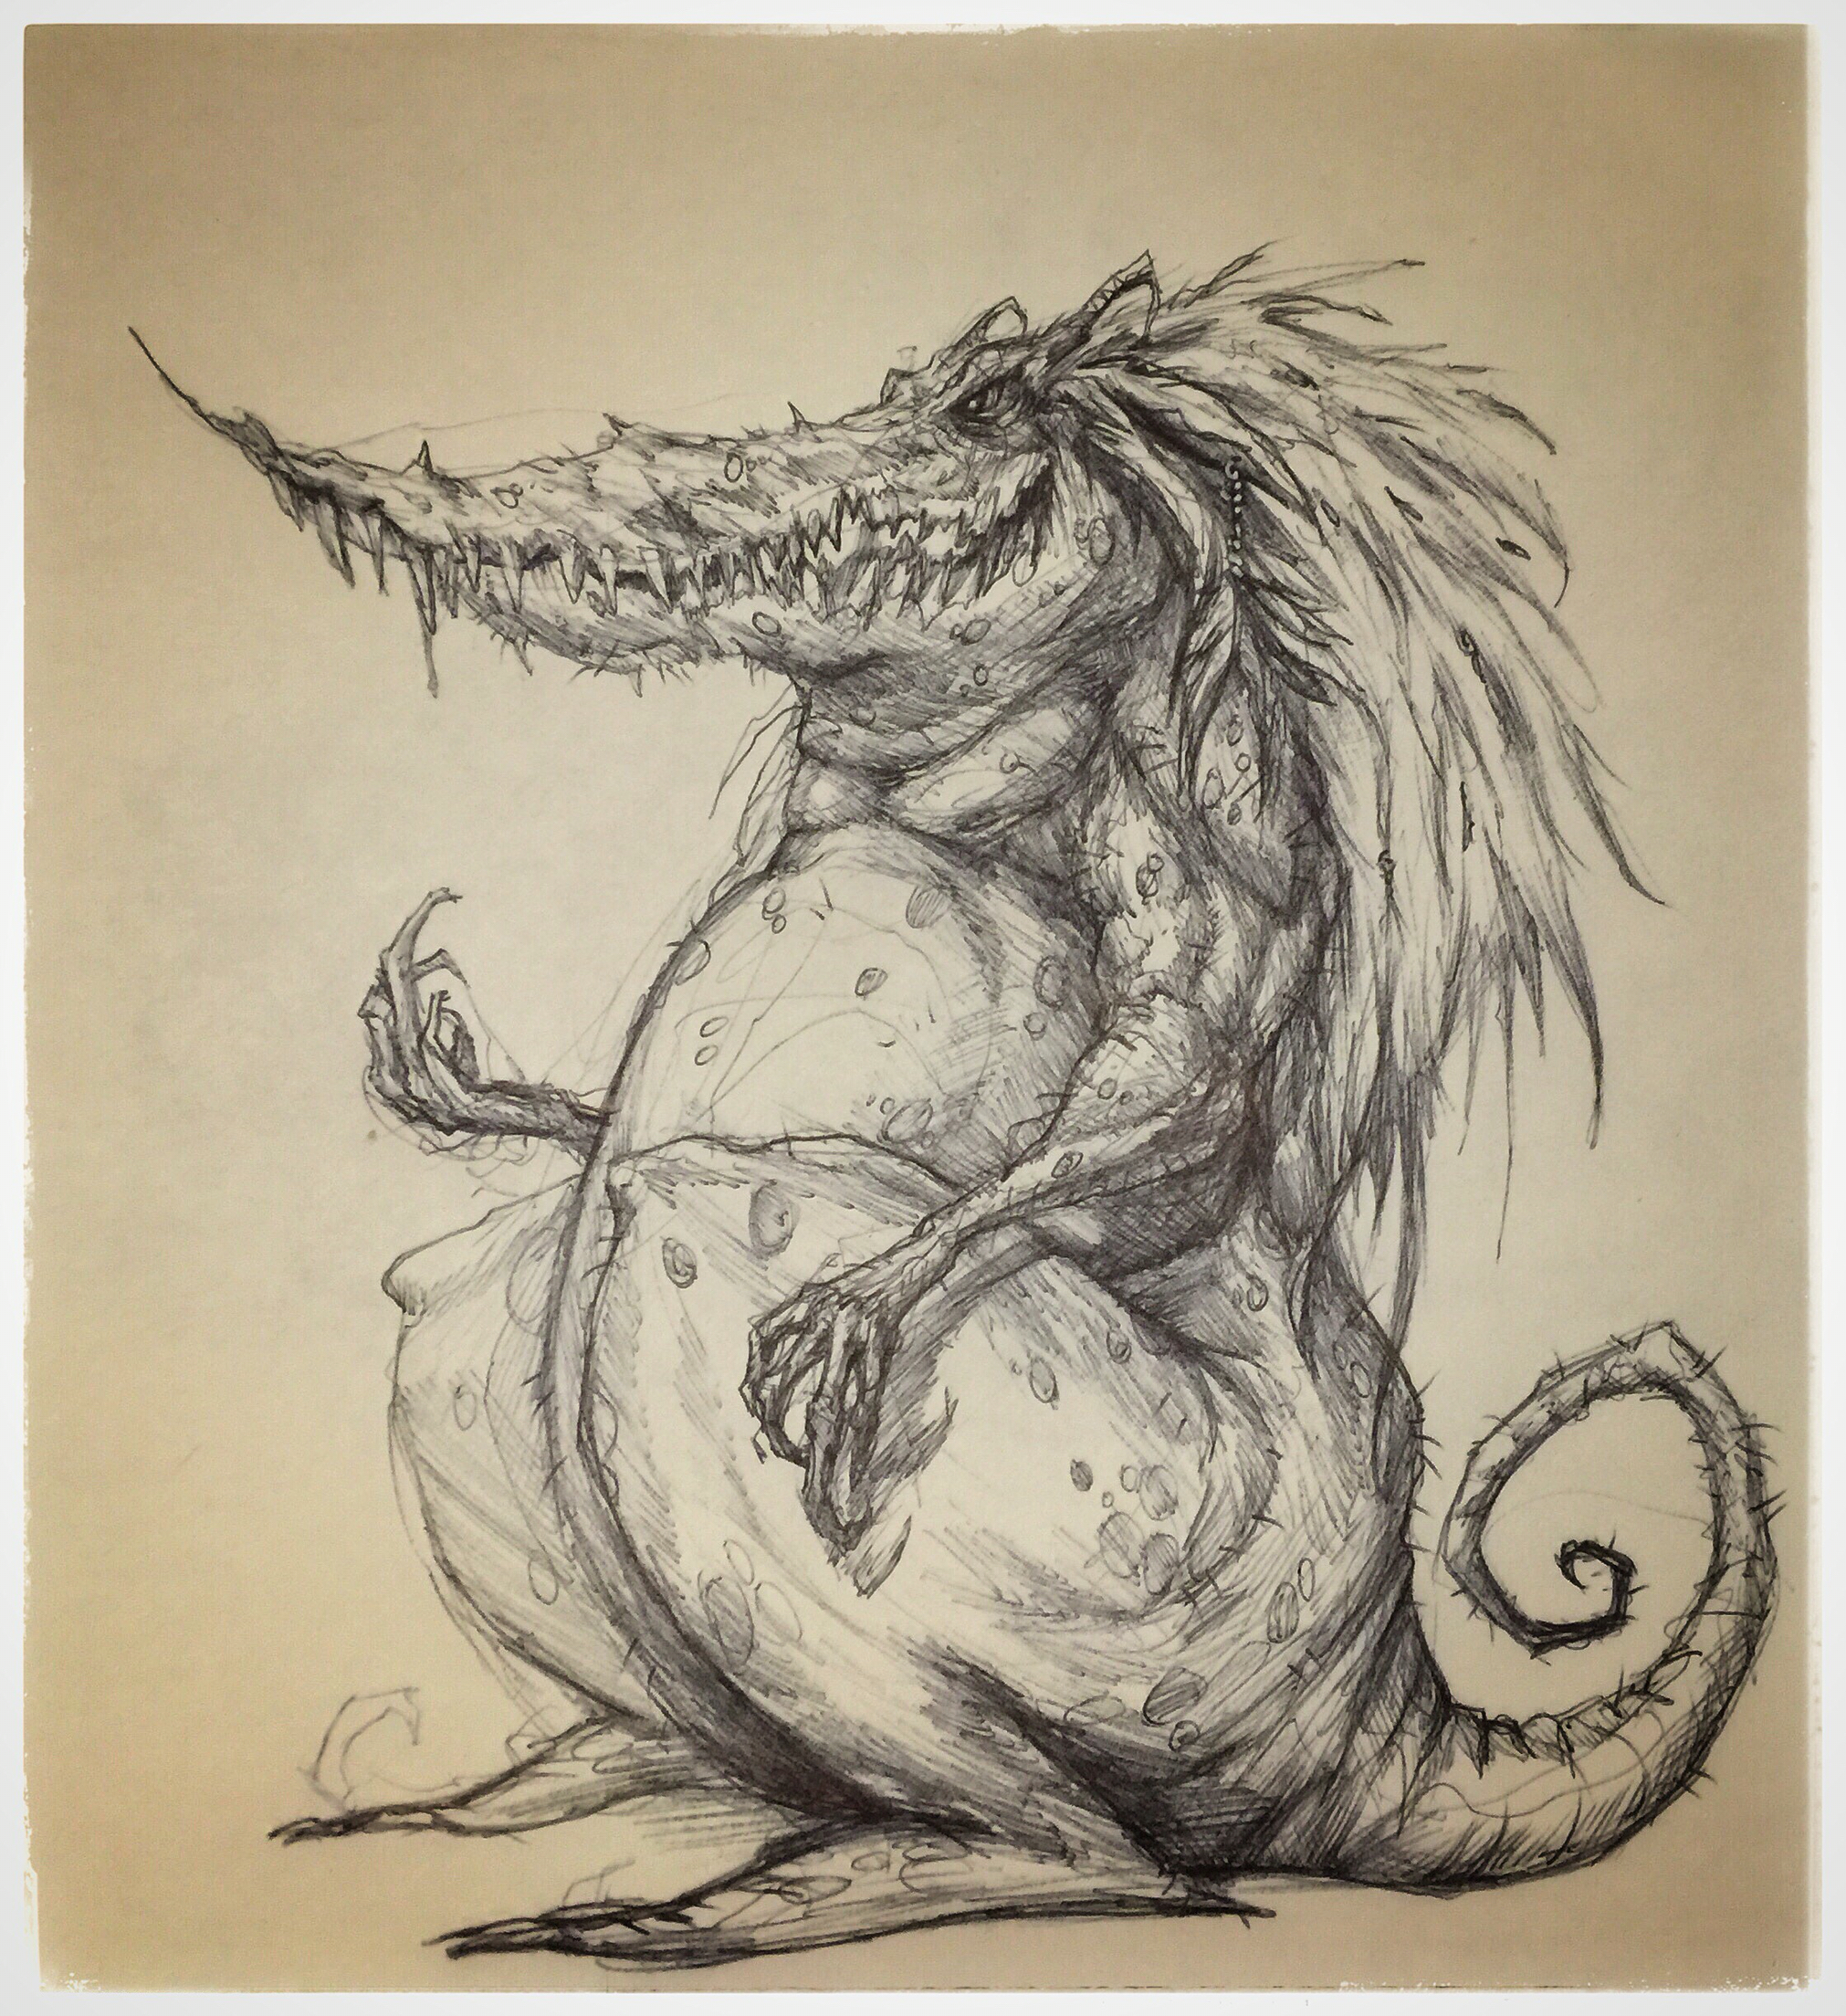 Drawn reptile stylized 4 #reptile #crosshatch #crosshatch #monster